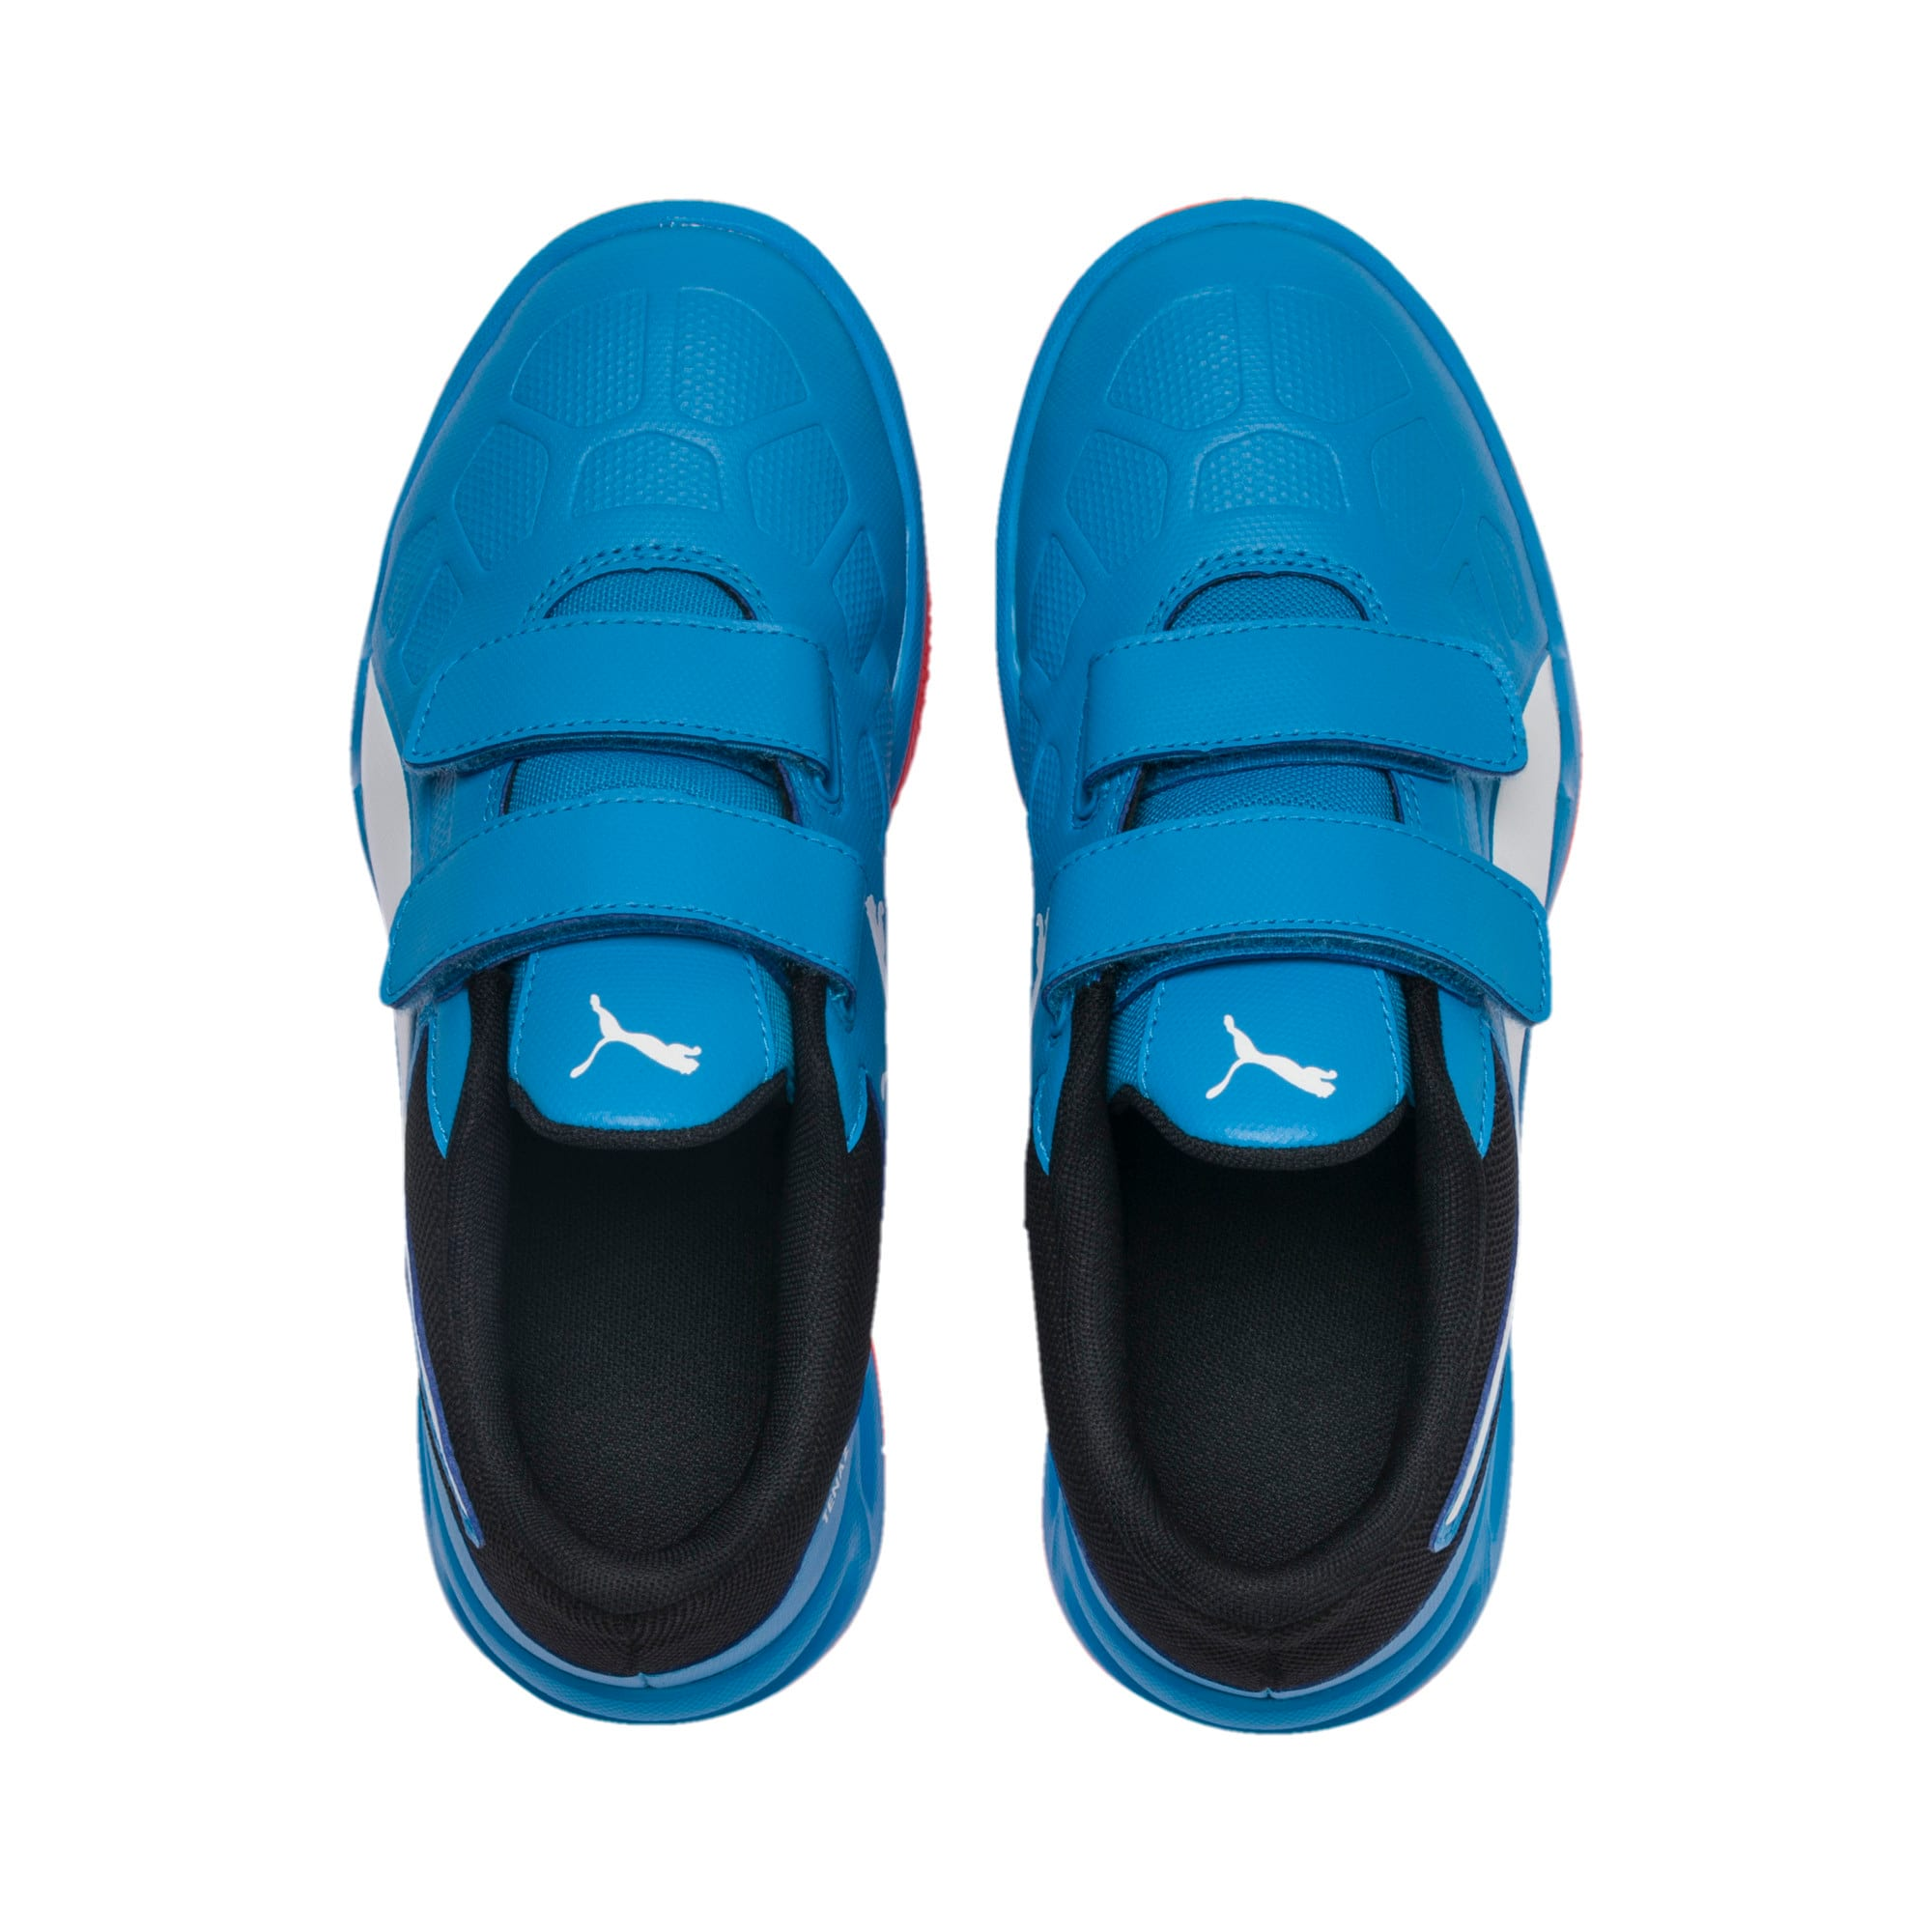 Thumbnail 3 of Tenaz V Youth Trainers, Bleu Azur-White-Black-Red, medium-IND